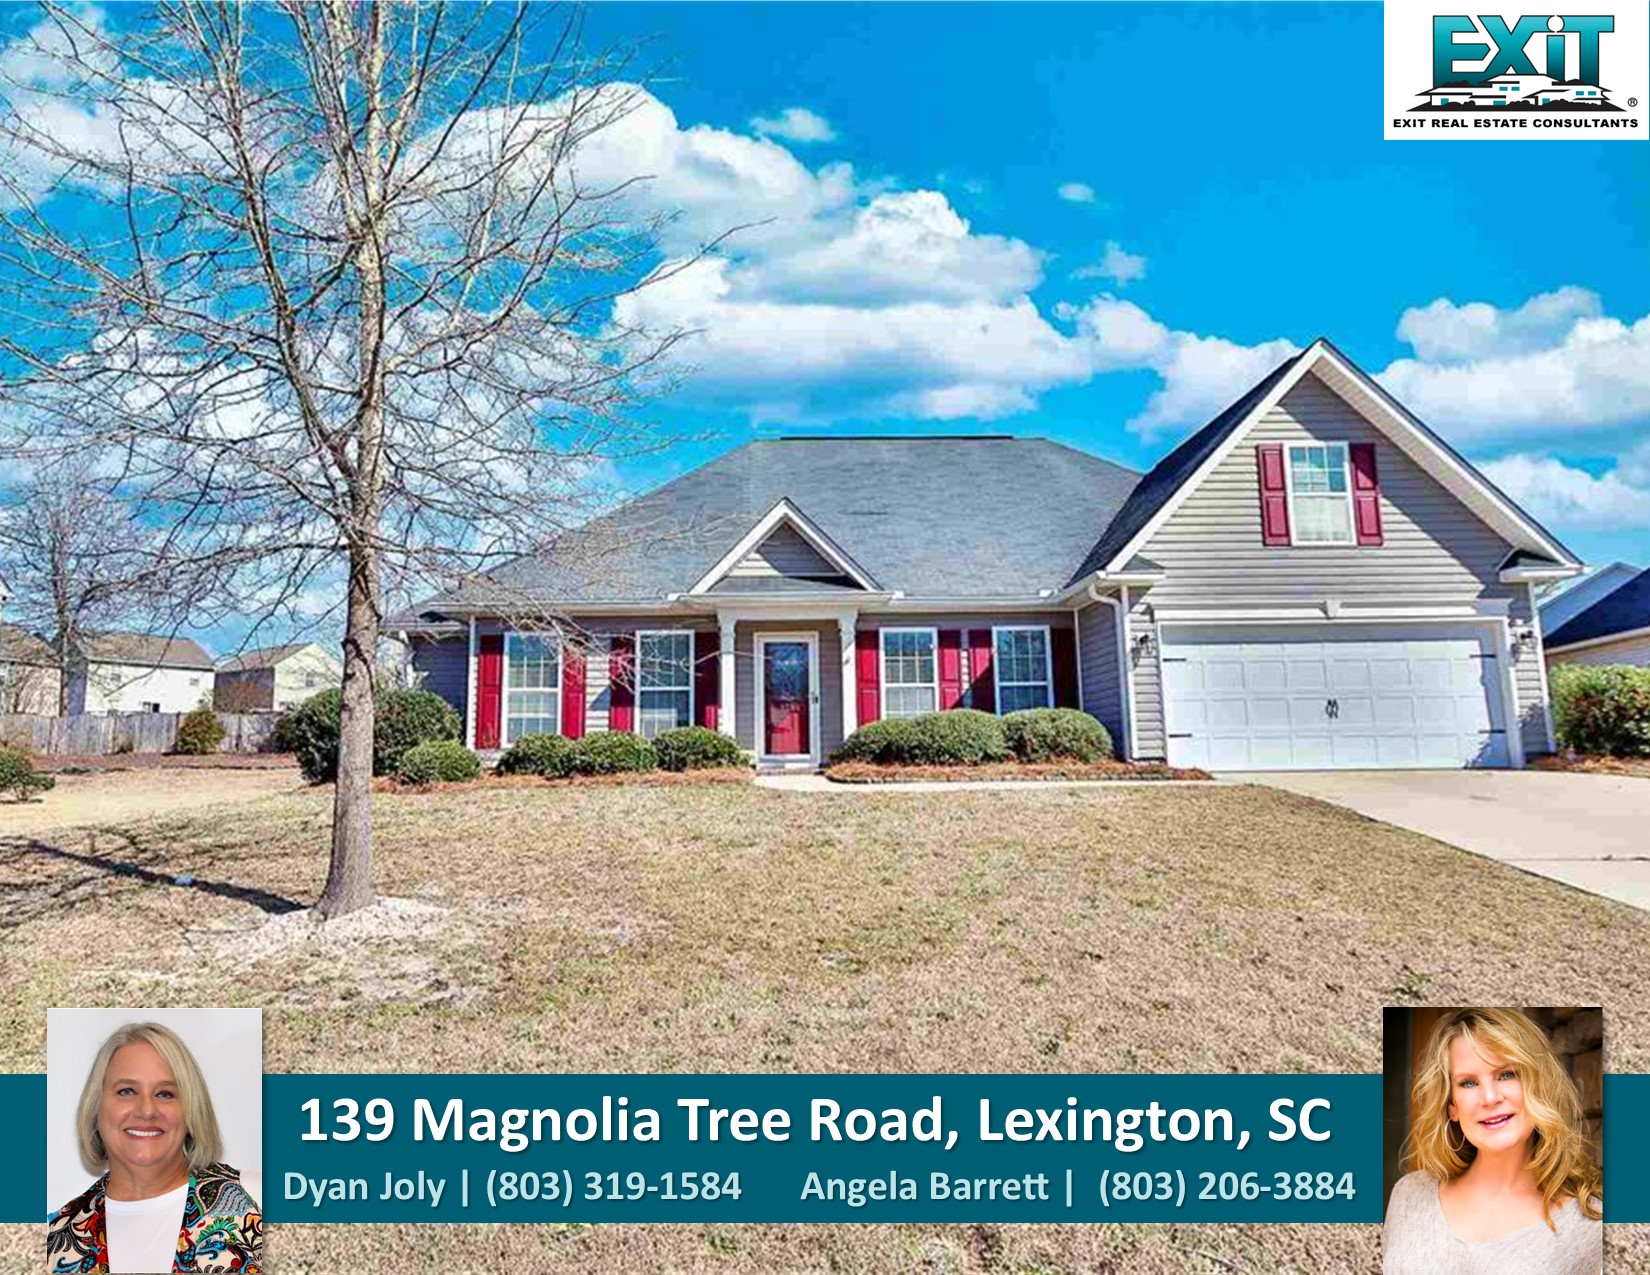 Just listed in Manors at White Knoll